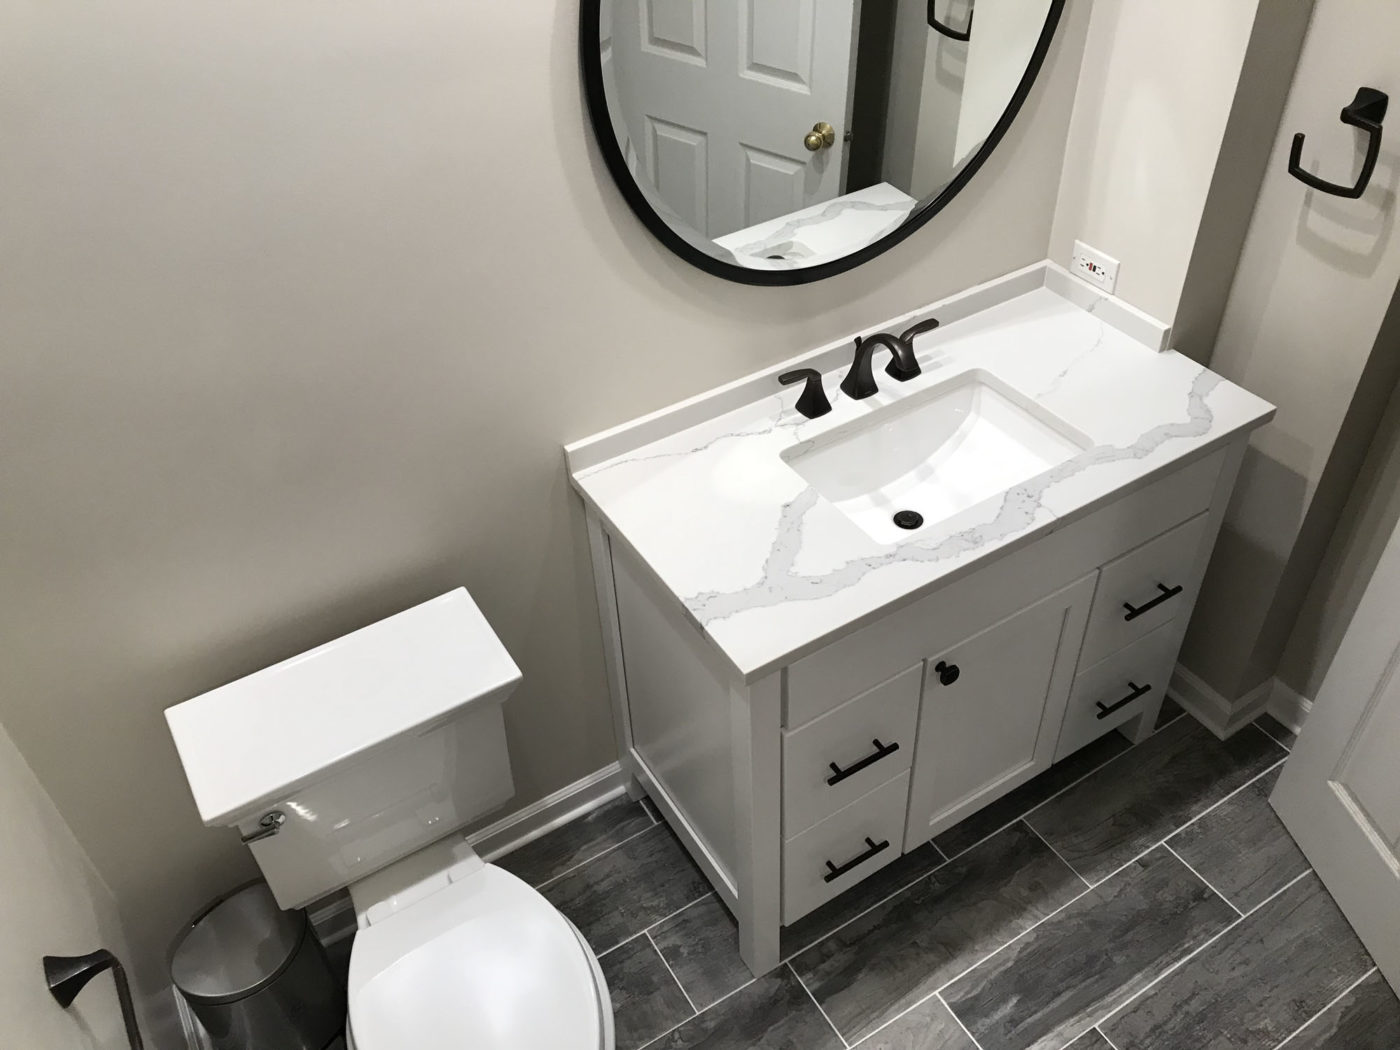 Bathroom Remodeling in Hinsdale - new flooring, sink, cabinets